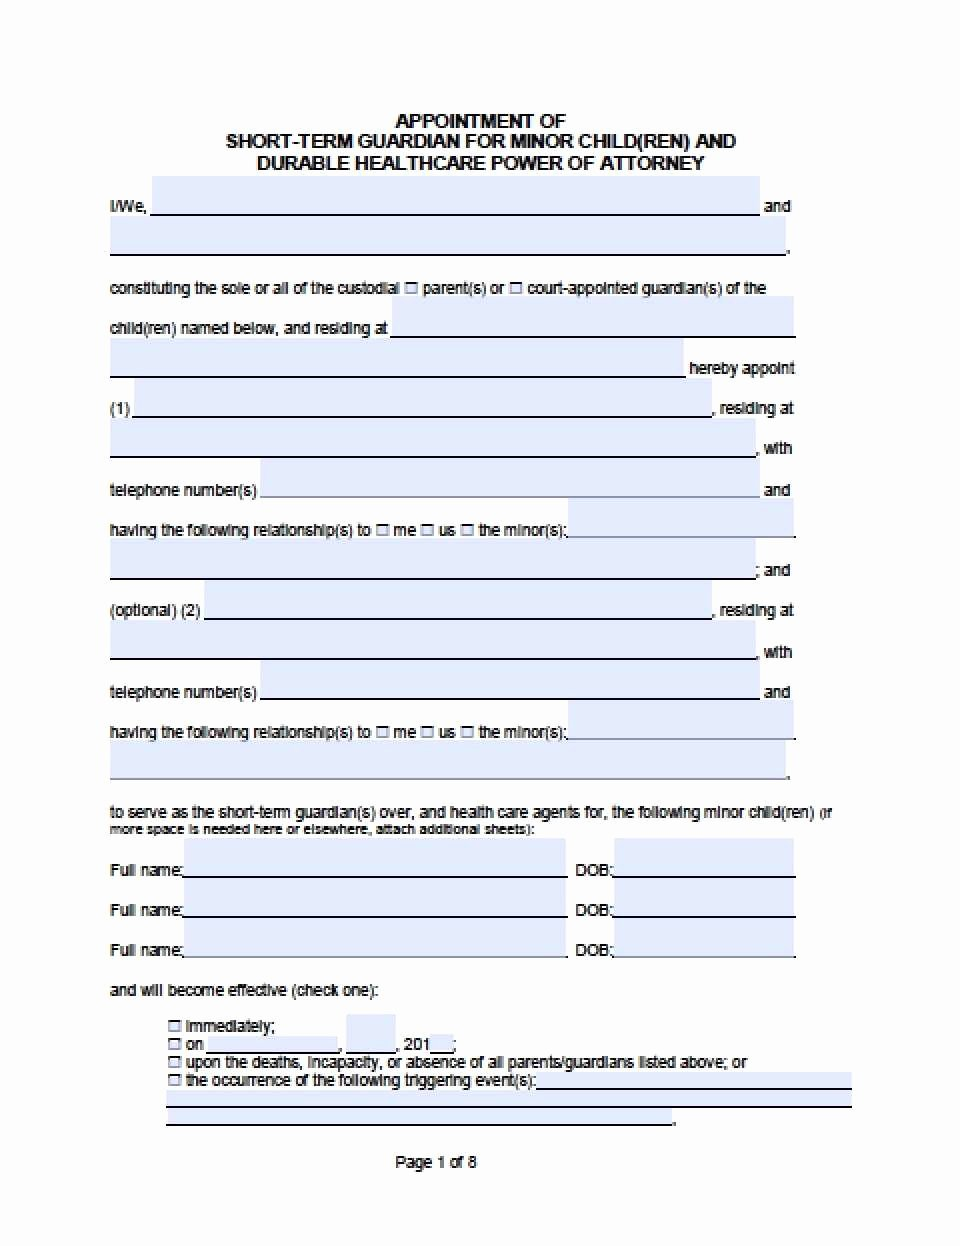 Free Temporary Guardianship form Template Awesome Temporary Guardianship Agreement form California Excellent